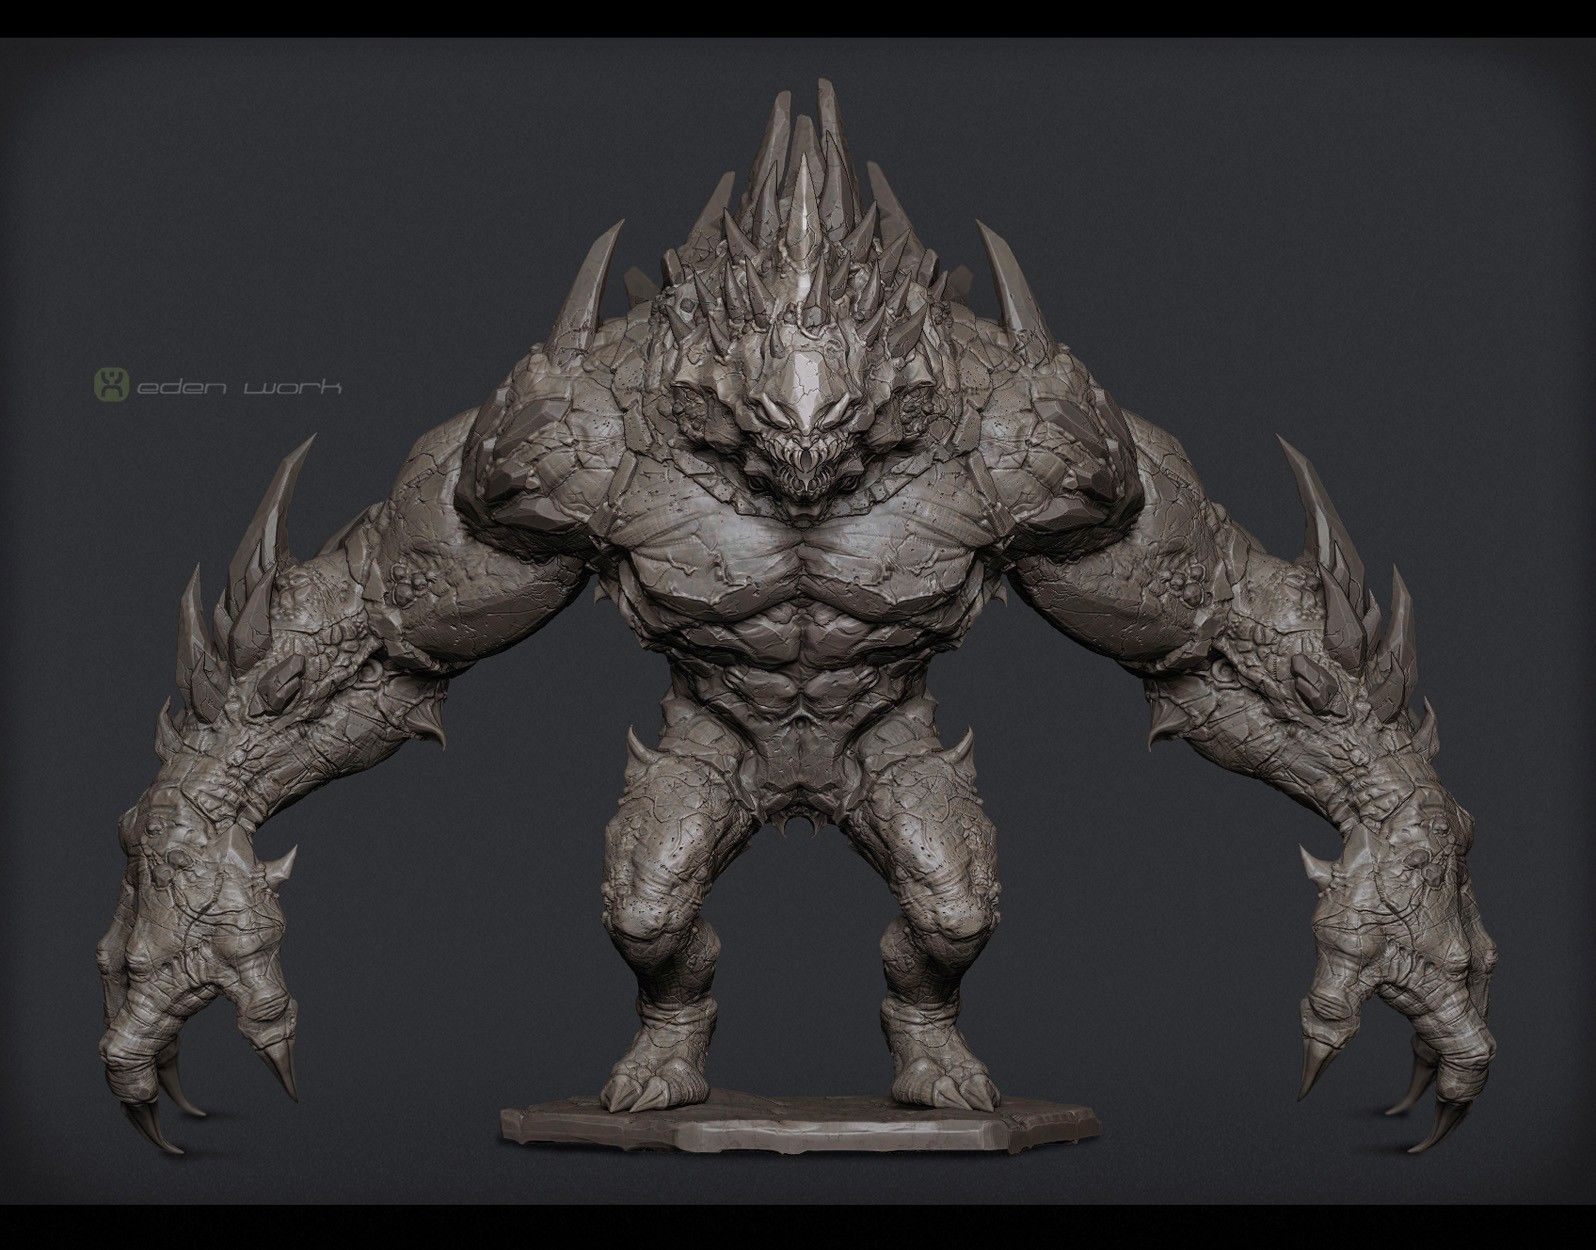 Character Design Unreal Engine : Unreal engine game project giant monster by 戚震雨